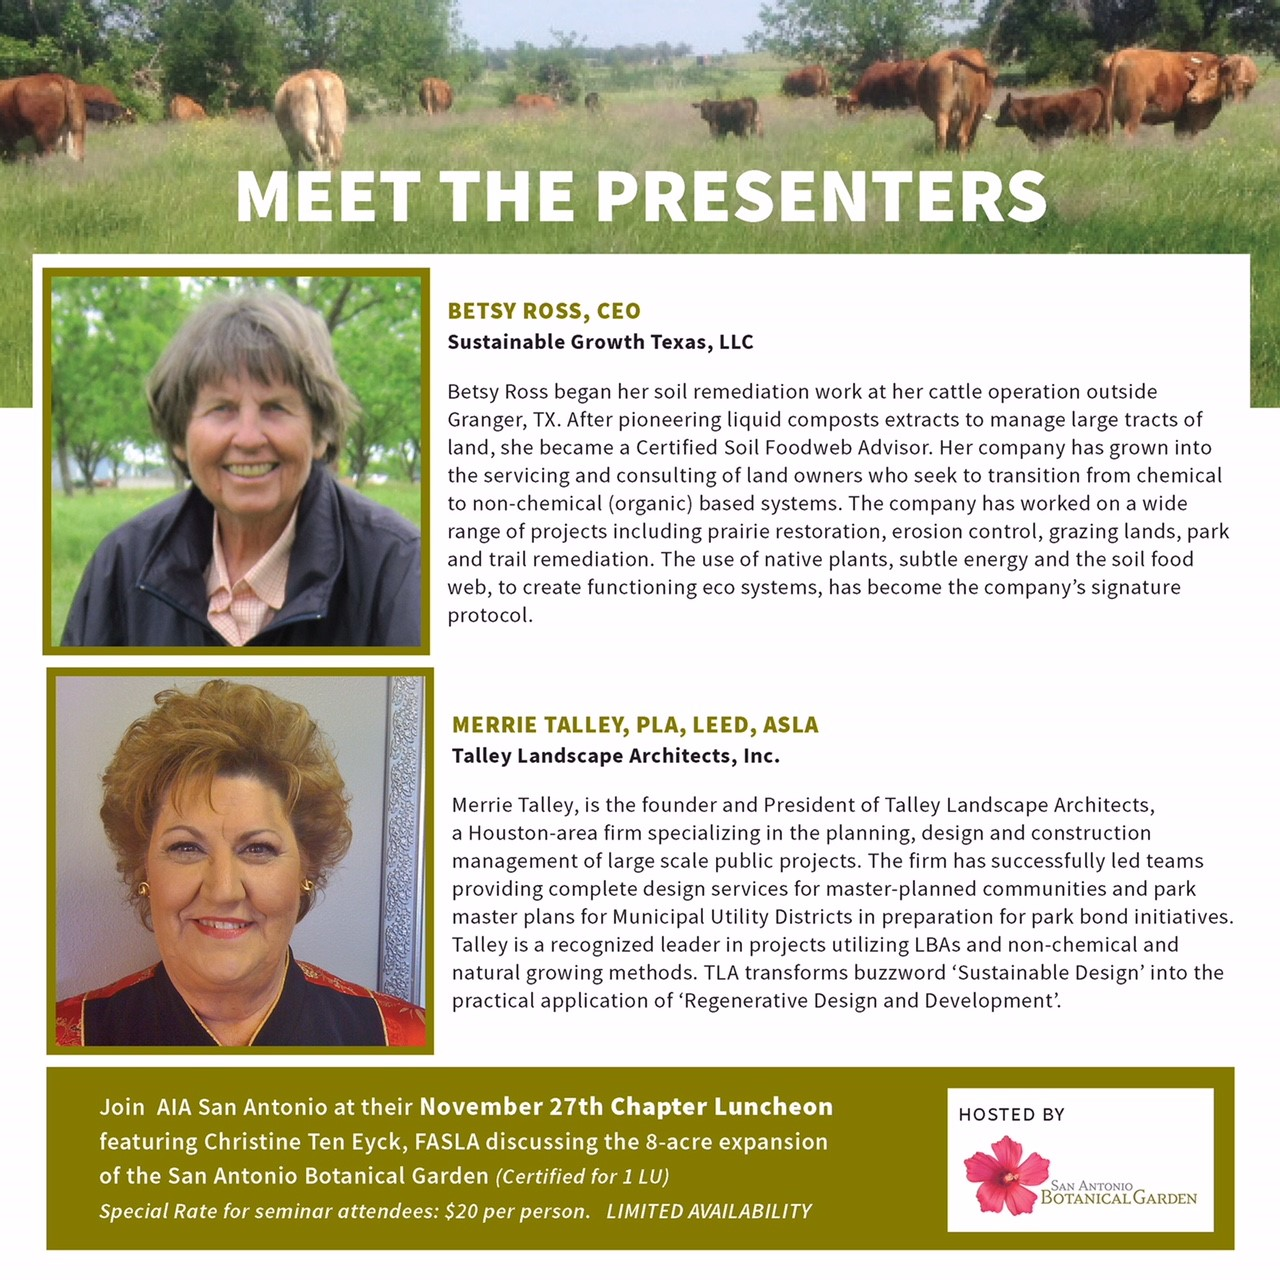 - The presentation is a two part class, that will provide architects (AIA) and landscape architects (ASLA), contractors, facility managers, maintenance crews, and owners insight into establishing a framework for managing natural growing systems.